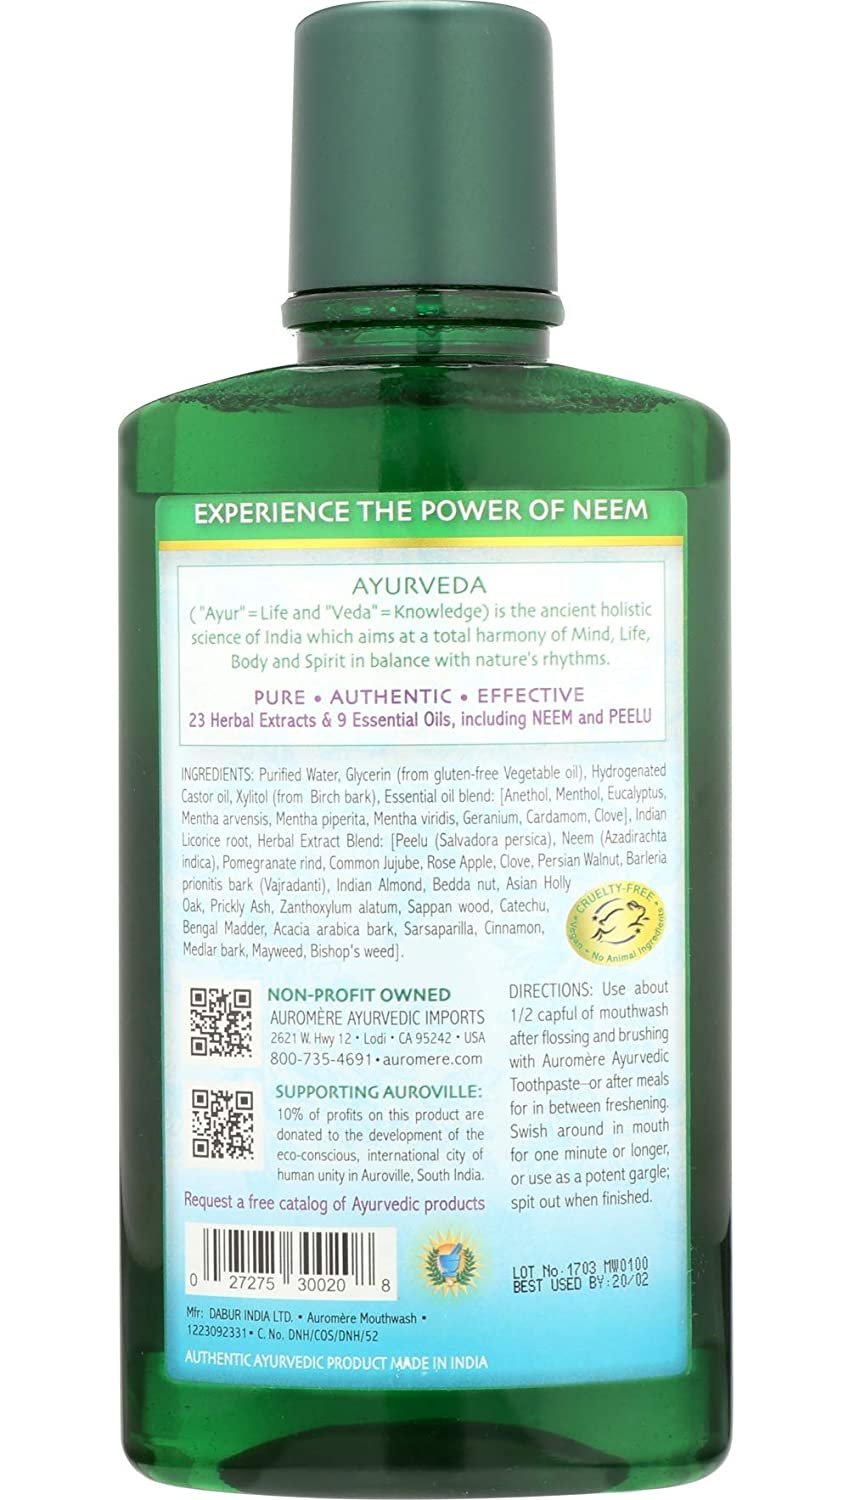 Ayurvedic Mouthwash by Auromere – Fluoride-Free, Alcohol-Free, Natural, with Neem and Vegan – 16 fl oz 16 oz – pack of 2